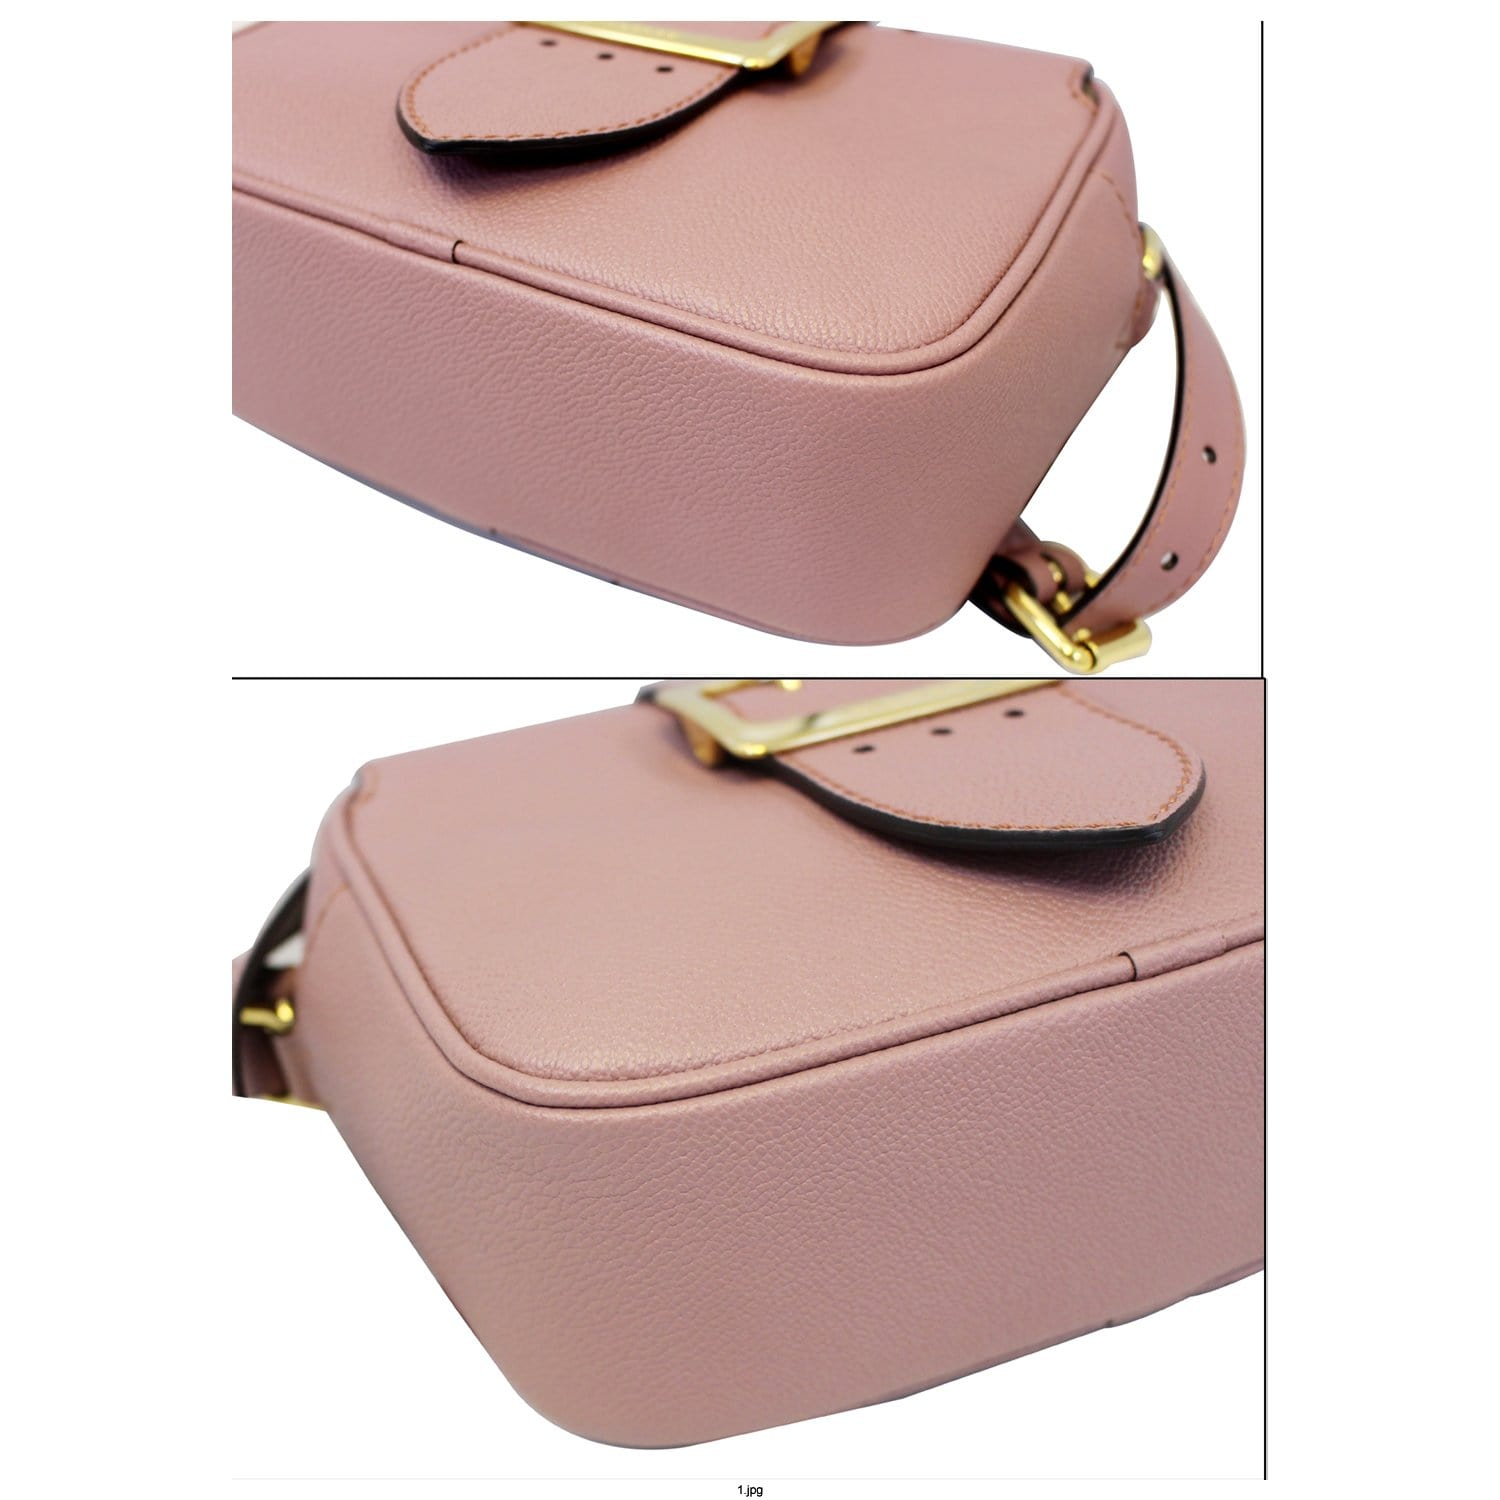 aed9065cb7b7 BURBERRY Medley Small Buckle Crossbody Bag Light Pink-US